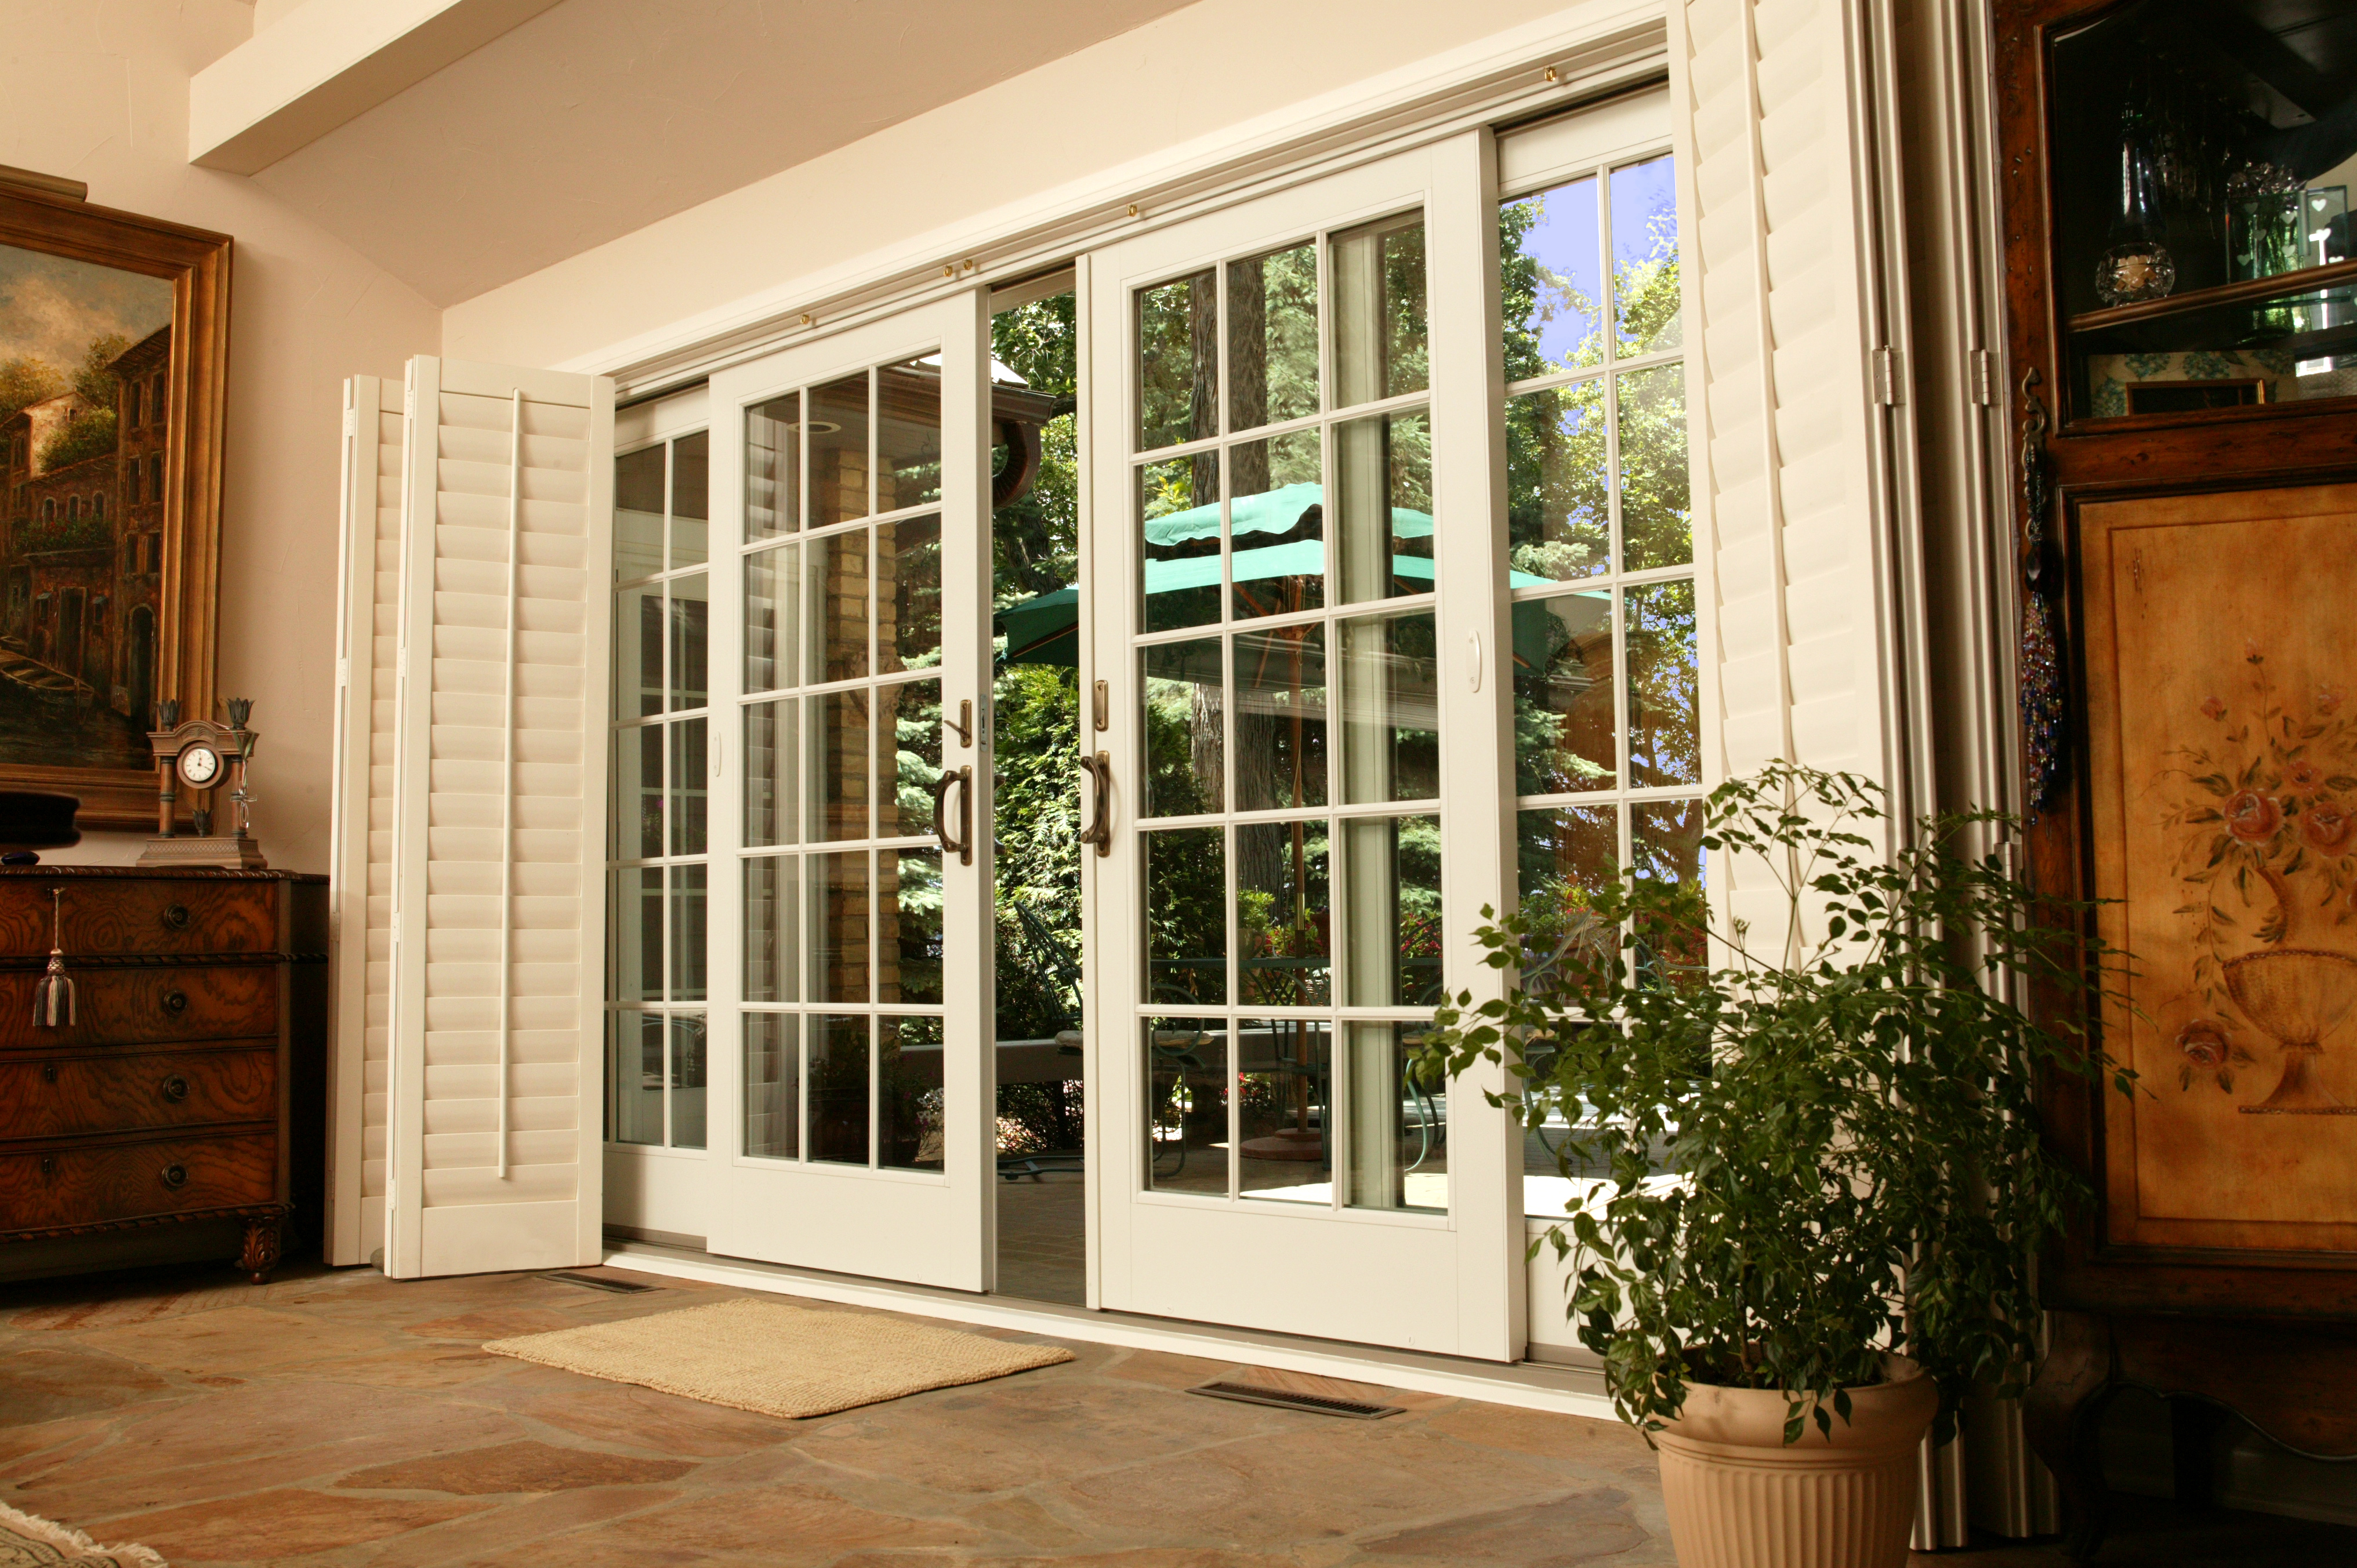 French Doors Prices Home Depot | Samsung French Door Refrigerator Home Depot | French Doors Home Depot